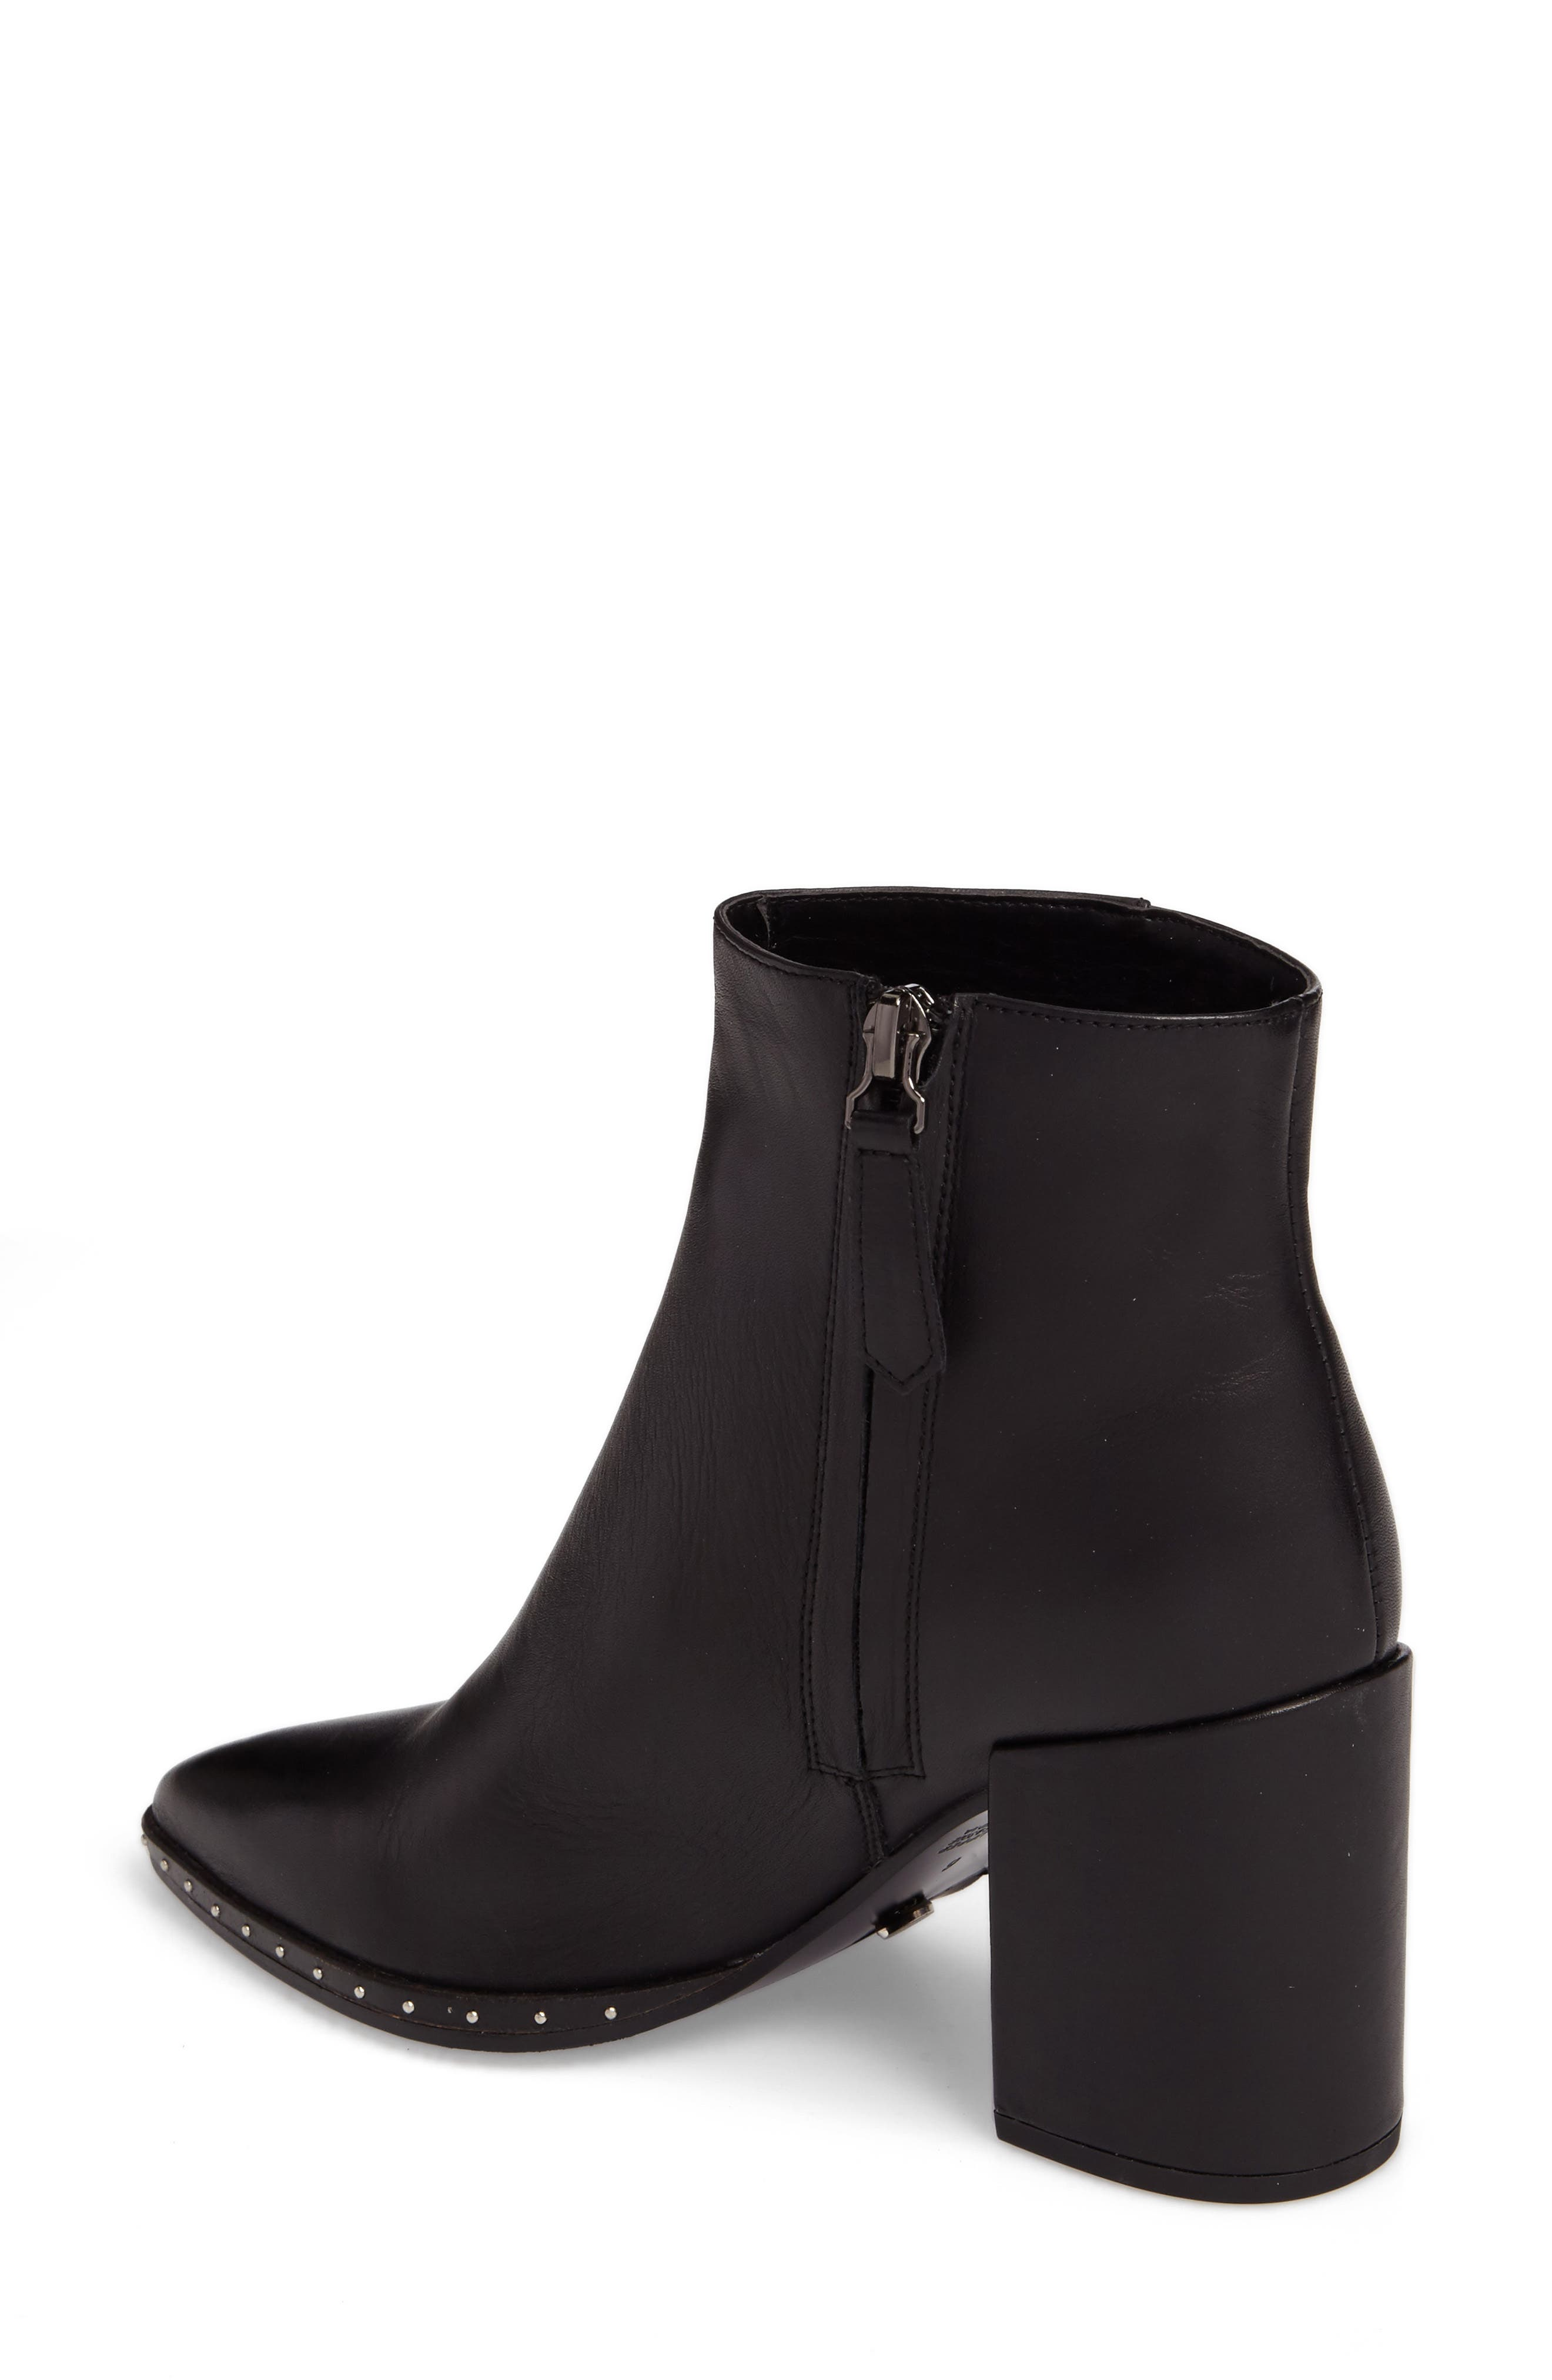 TONY BIANCO,                             Bailey Pointy Toe Bootie,                             Alternate thumbnail 2, color,                             BLACK ALBANY LEATHER